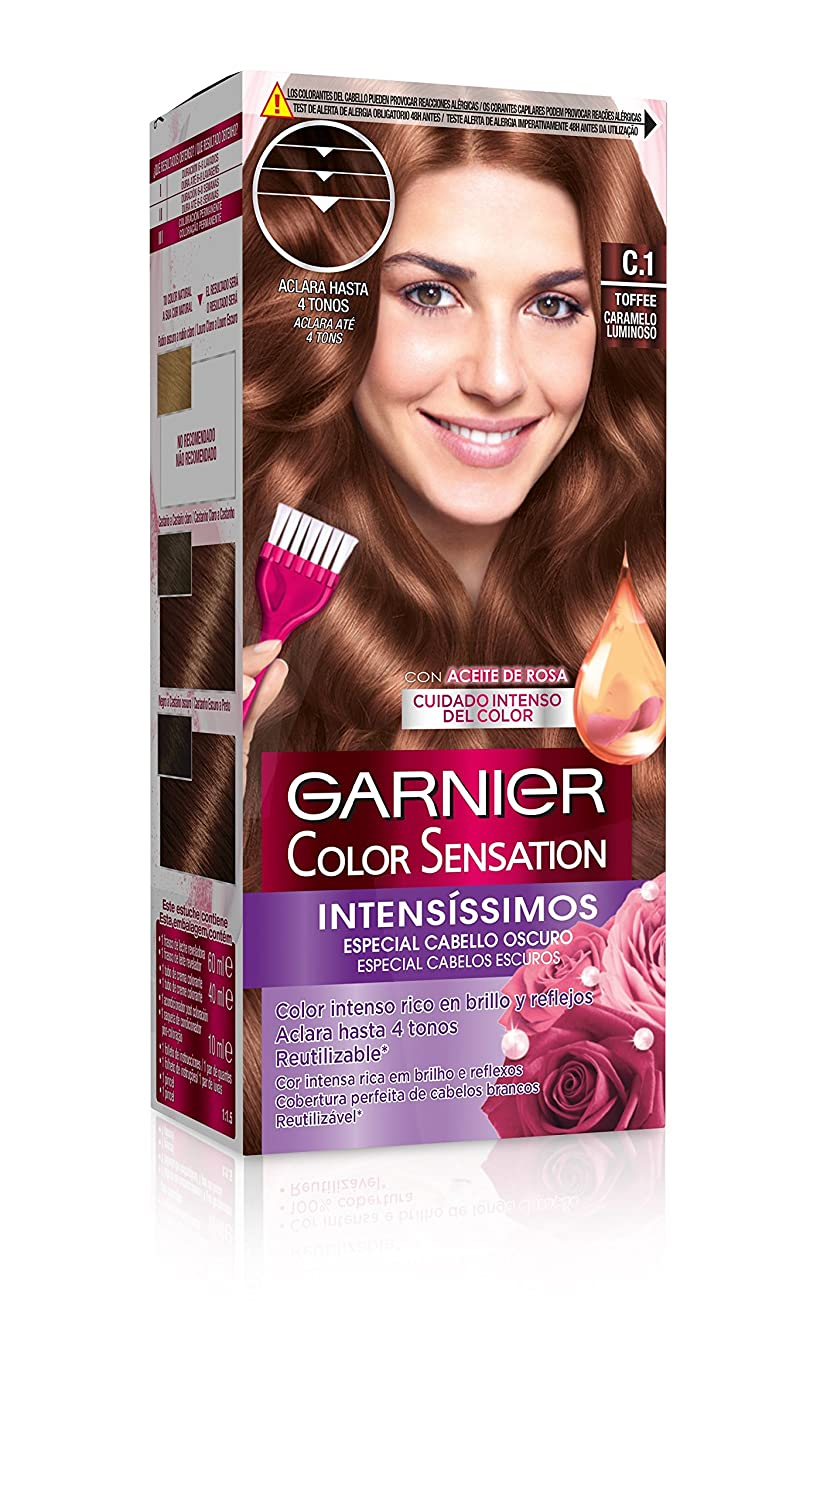 Garnier Color Sensation coloración permanente e intensa reutilizable con bol y pincel - Tono: C1 Toffee: Amazon.es: Belleza